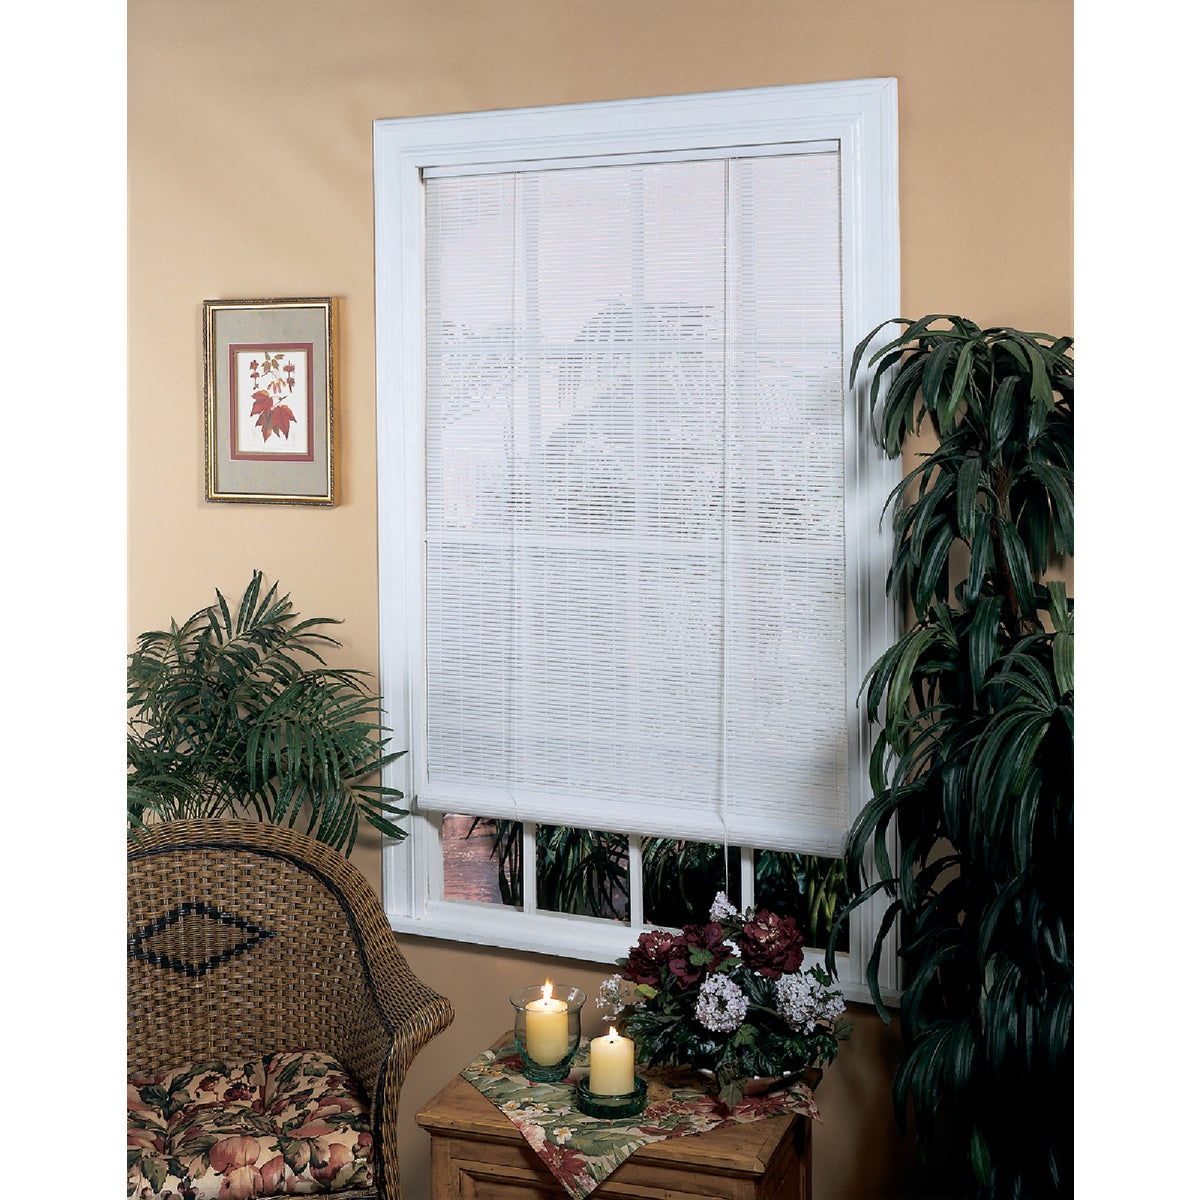 36X72 WHT ROLL-UP BLIND - 0320136 by Lewis Hyman